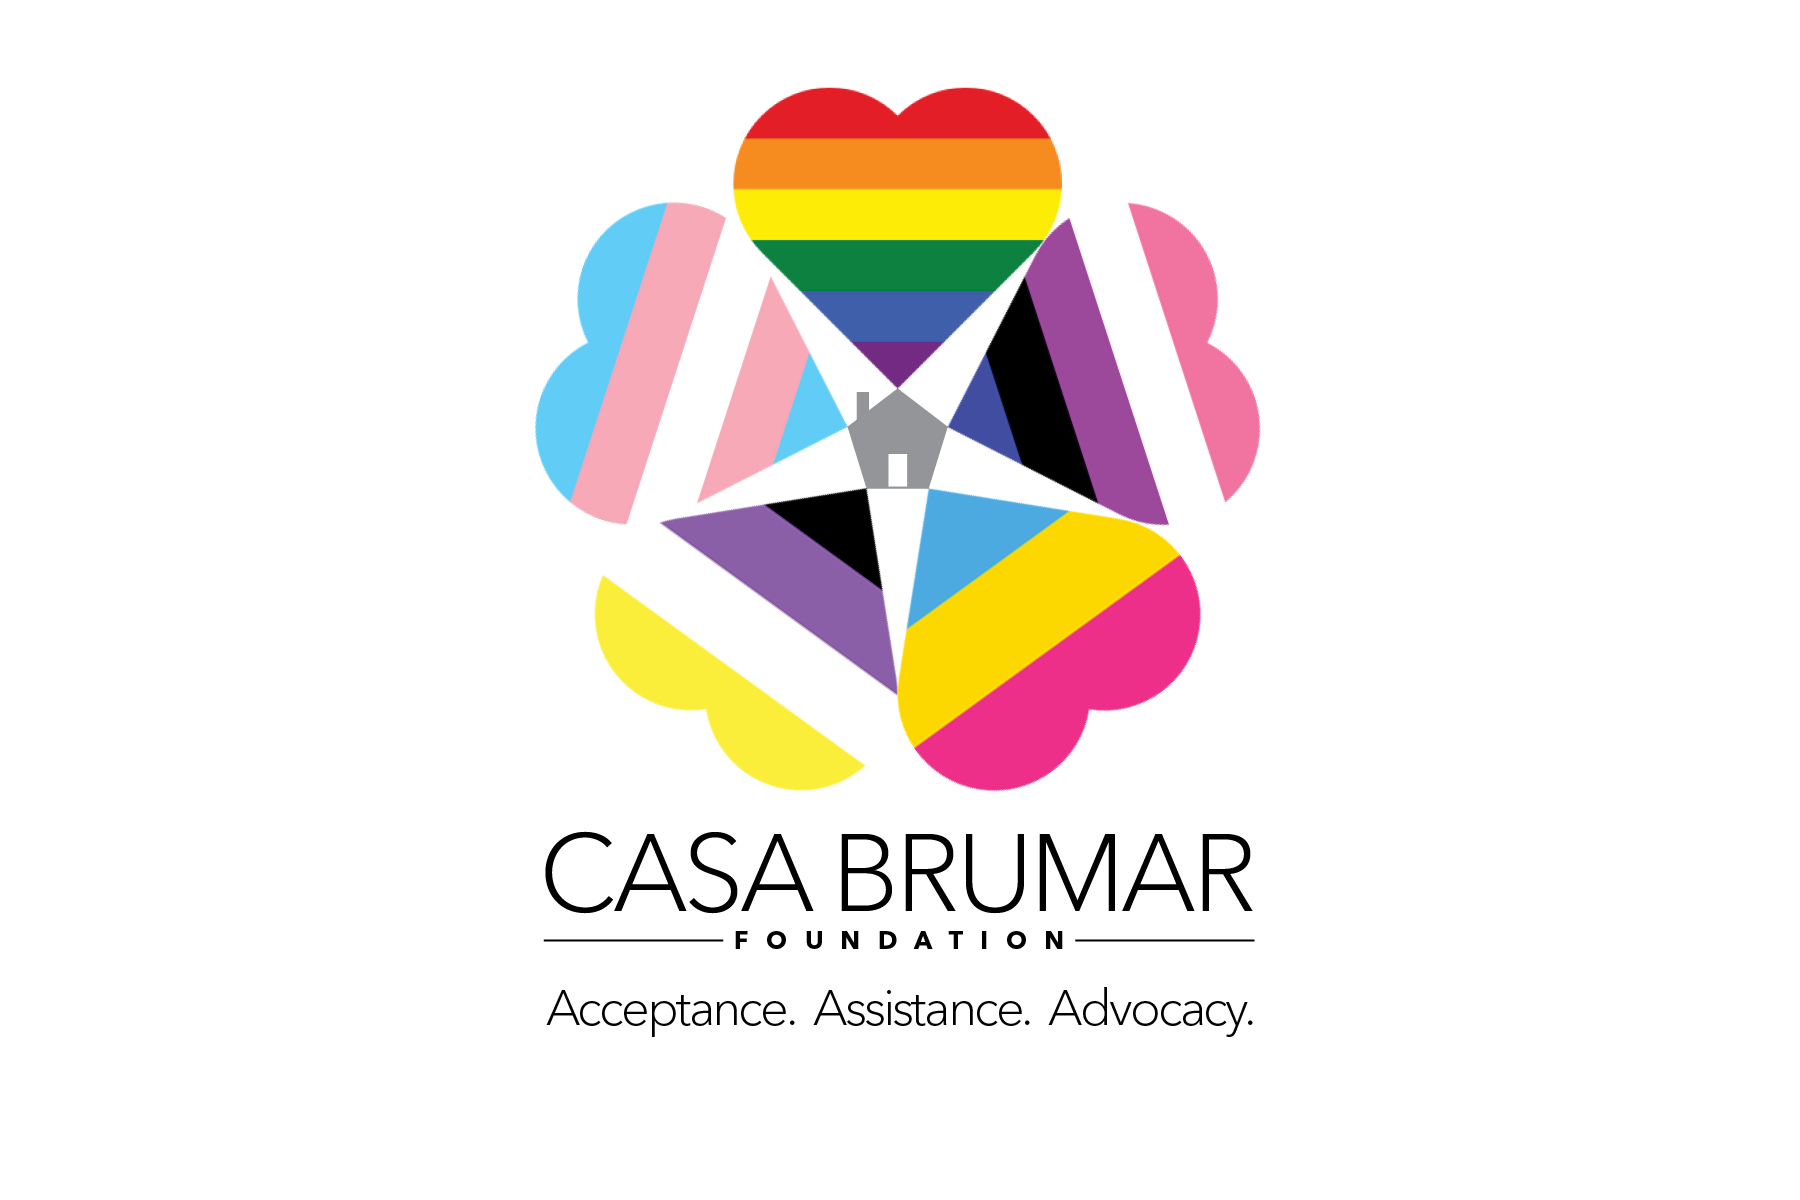 Casa BruMar Foundation's mission is to build the first LGBTQ+ community center in Northern Virginia.